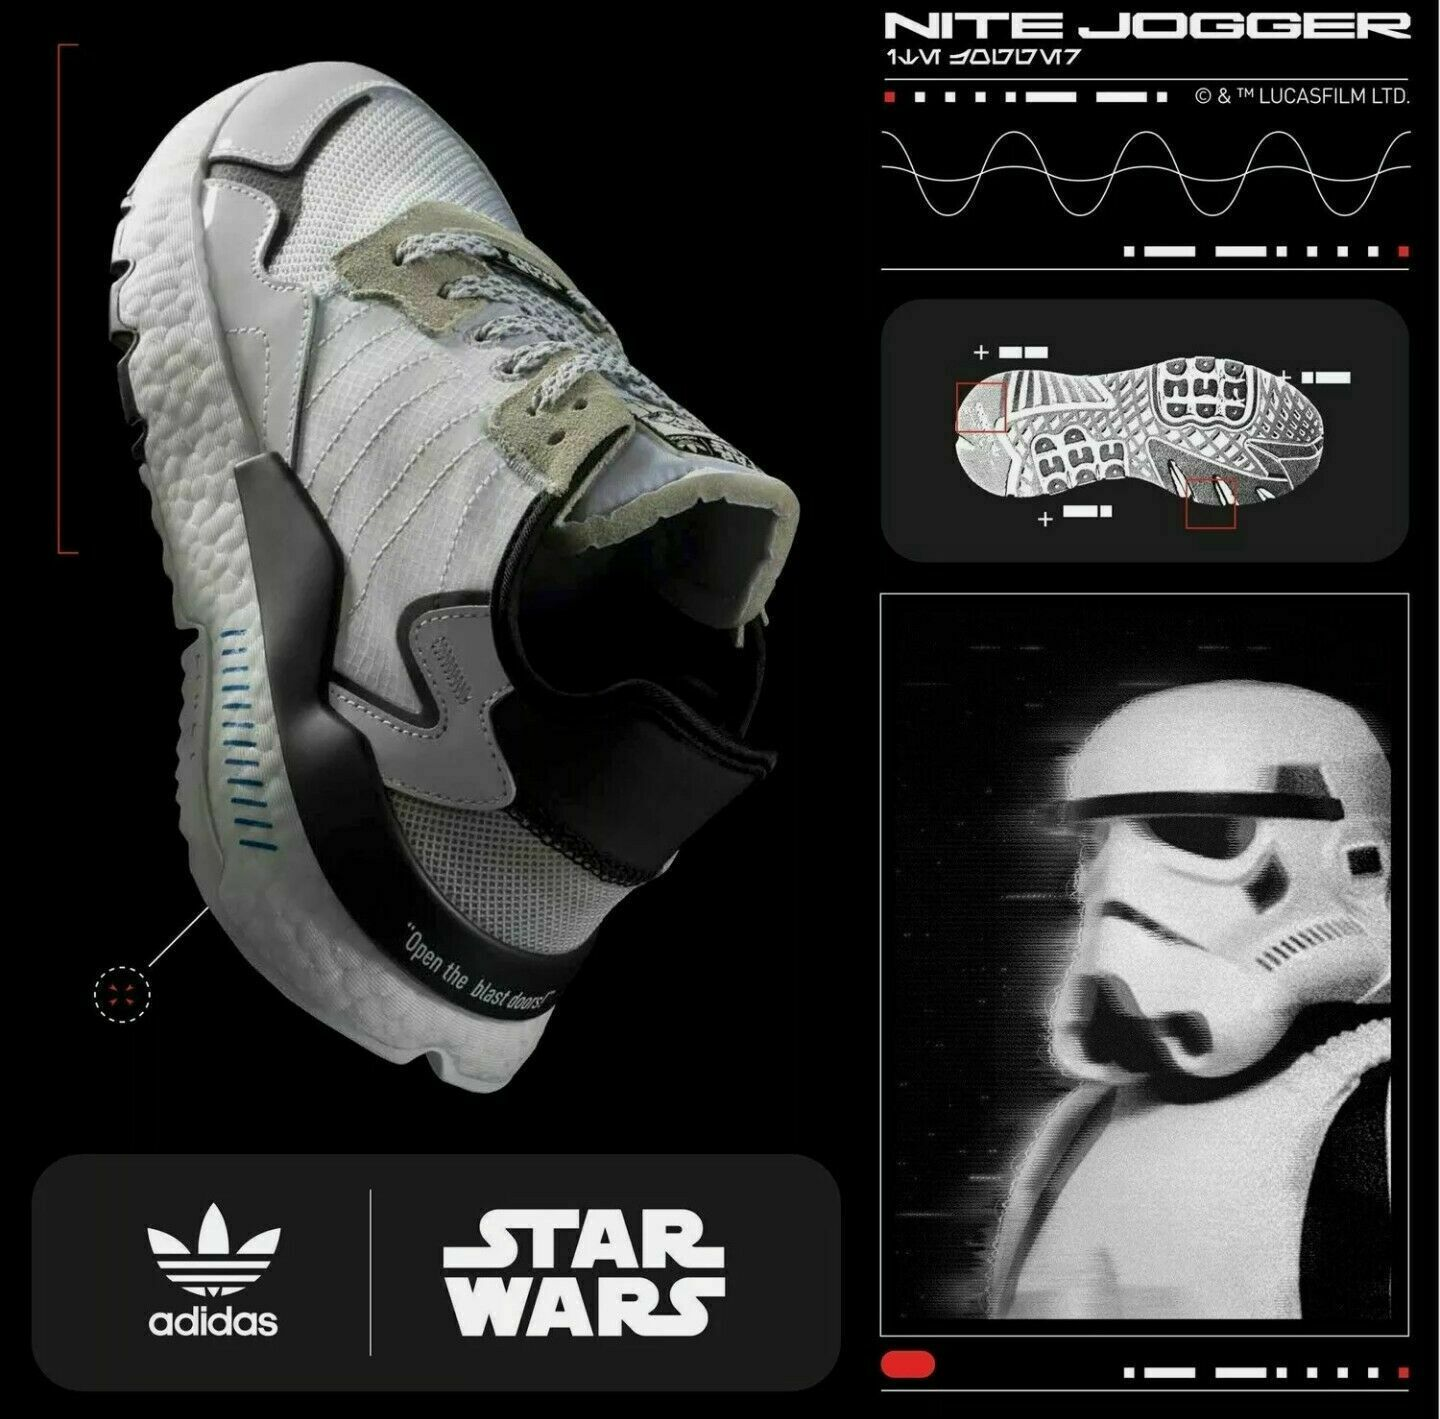 Primary image for Adidas Nite Jogger Star Wars Storm Trooper Boost Shoes Sneaker White Size 6y New